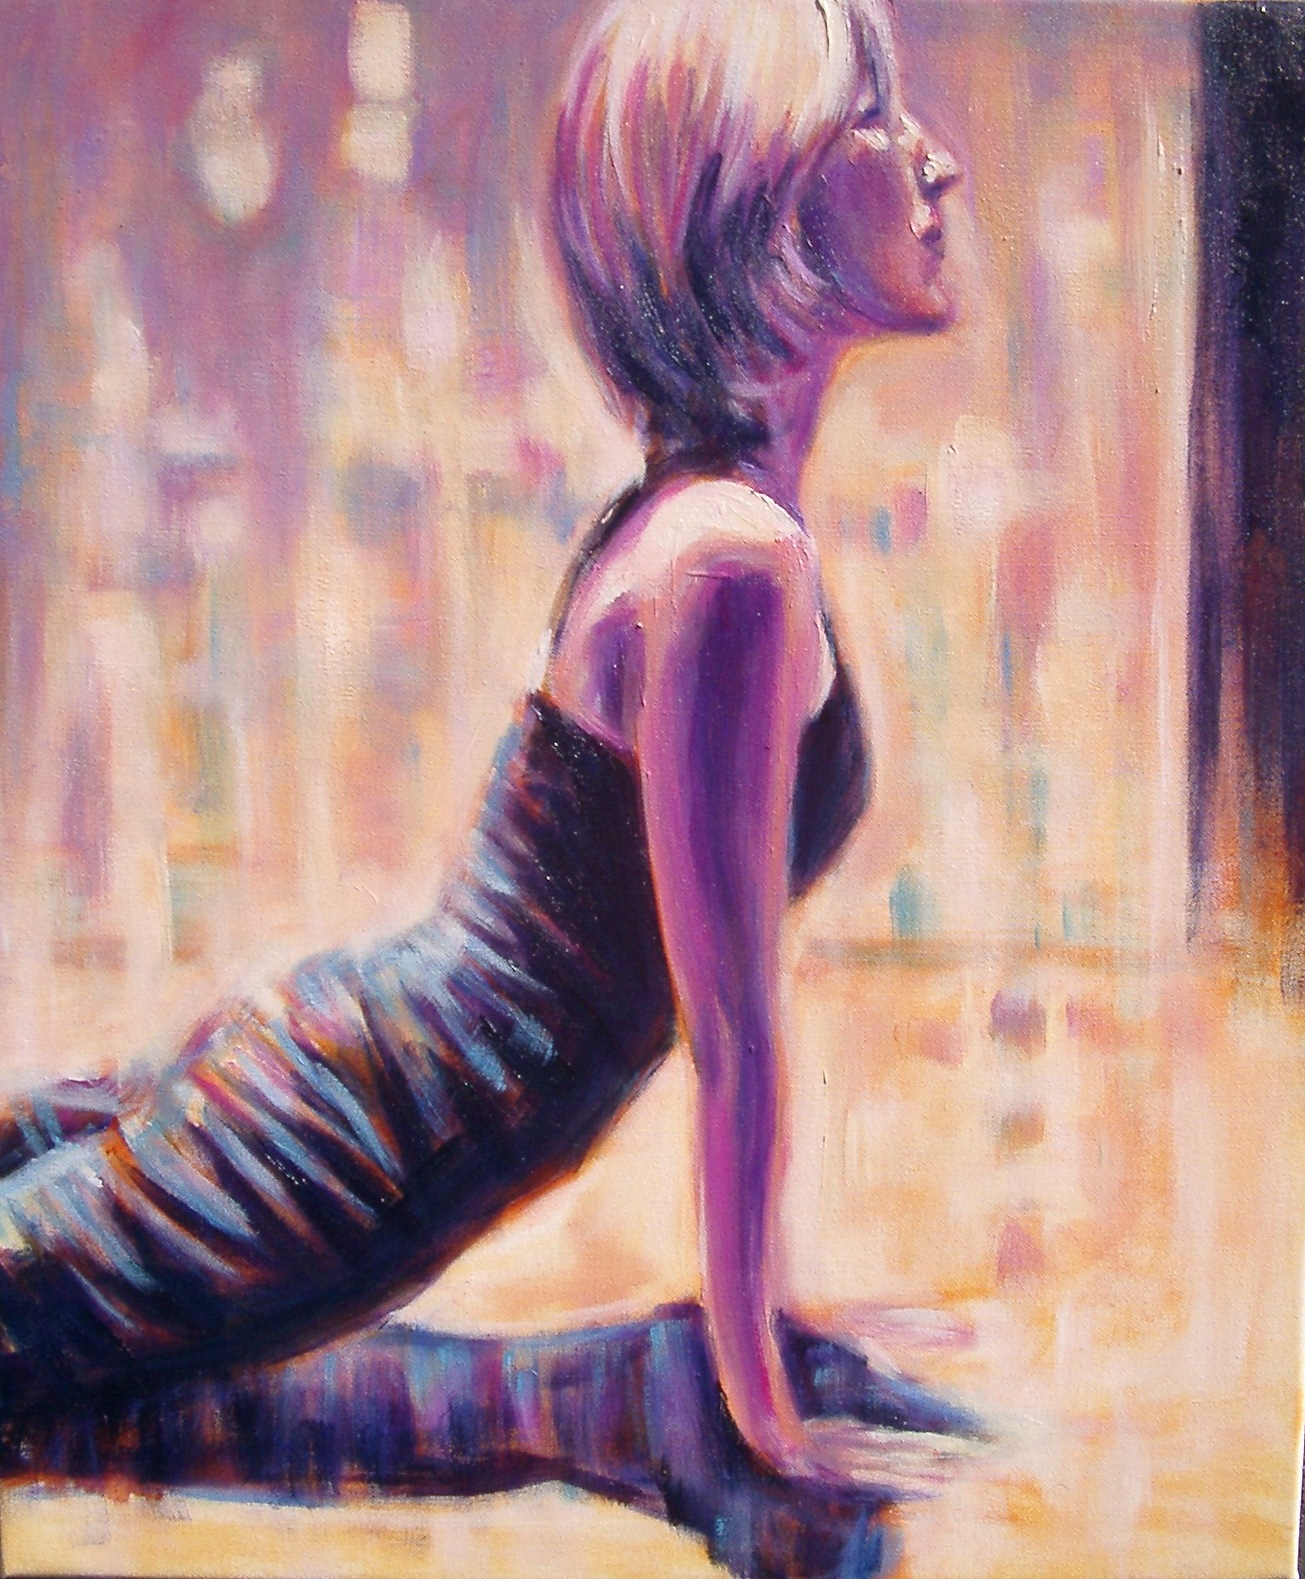 Yoga Pose XV Final Back To The Art Of Painting Without